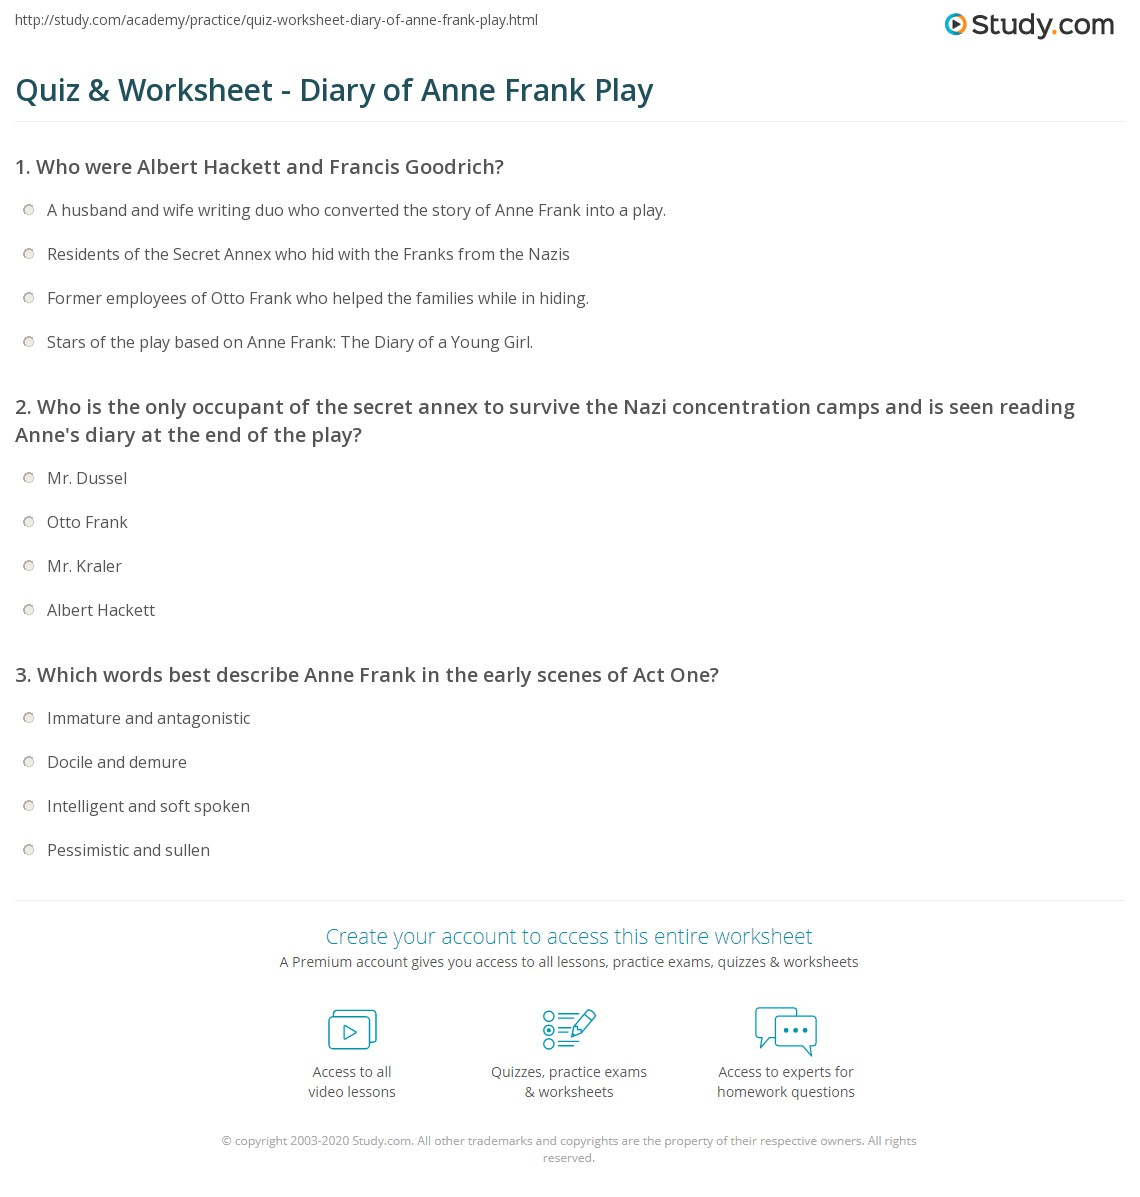 essay about anne frank frank essay quiz worksheet diary of anne  quiz worksheet diary of anne frank play com print diary of anne frank by albert hackett